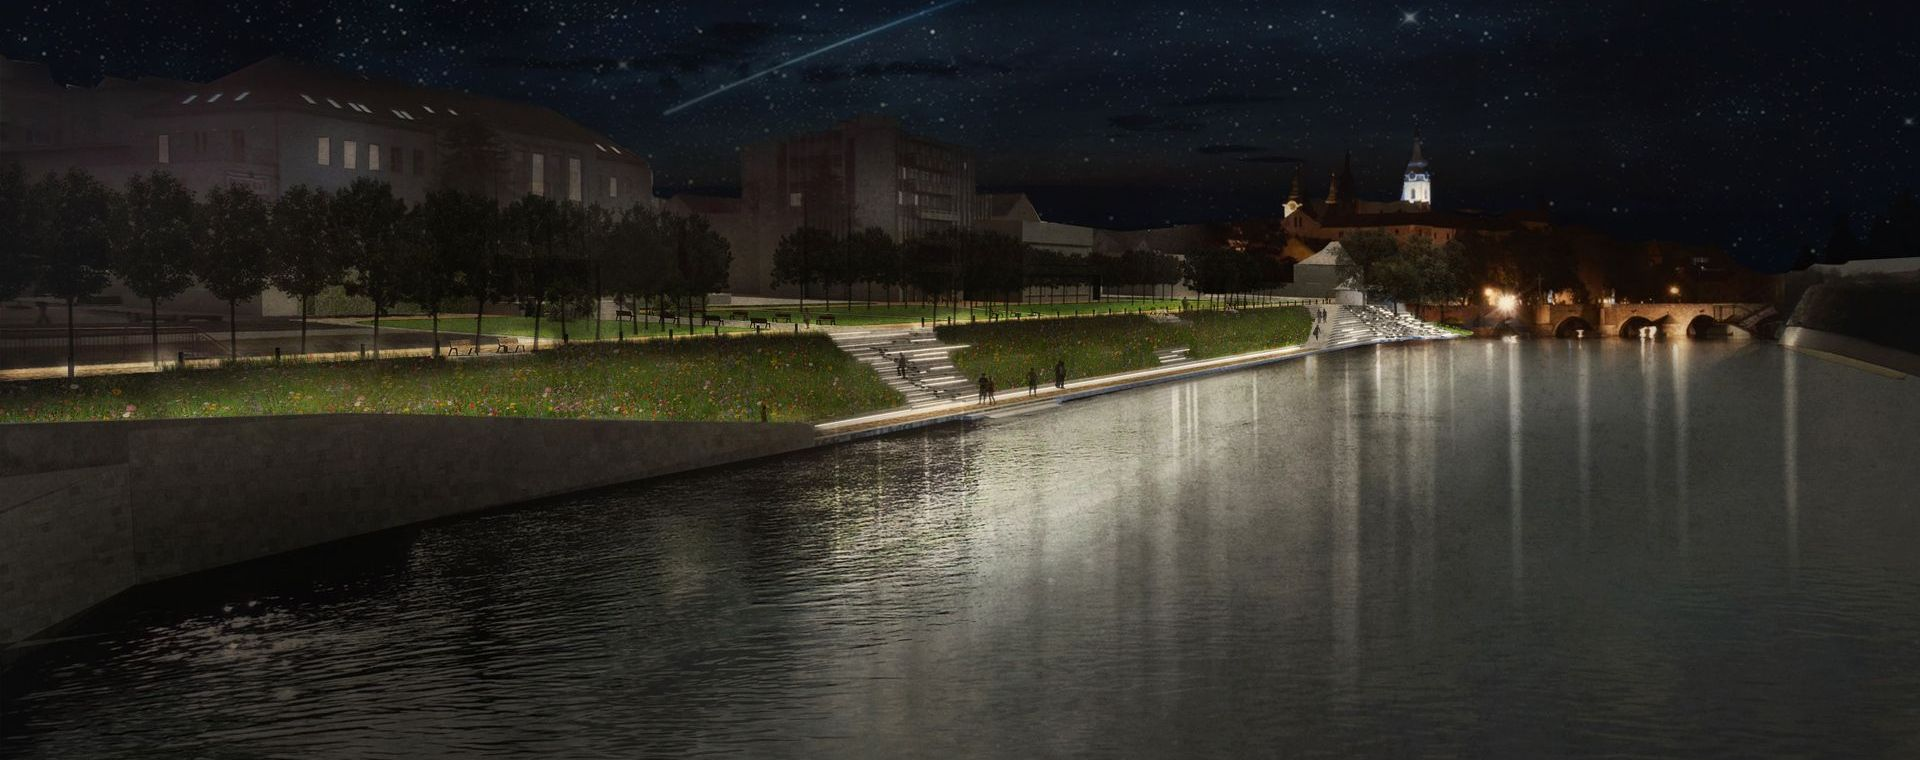 The architectural competetion to The city of Písek, CZ, the river side of Otava river 2013-2015